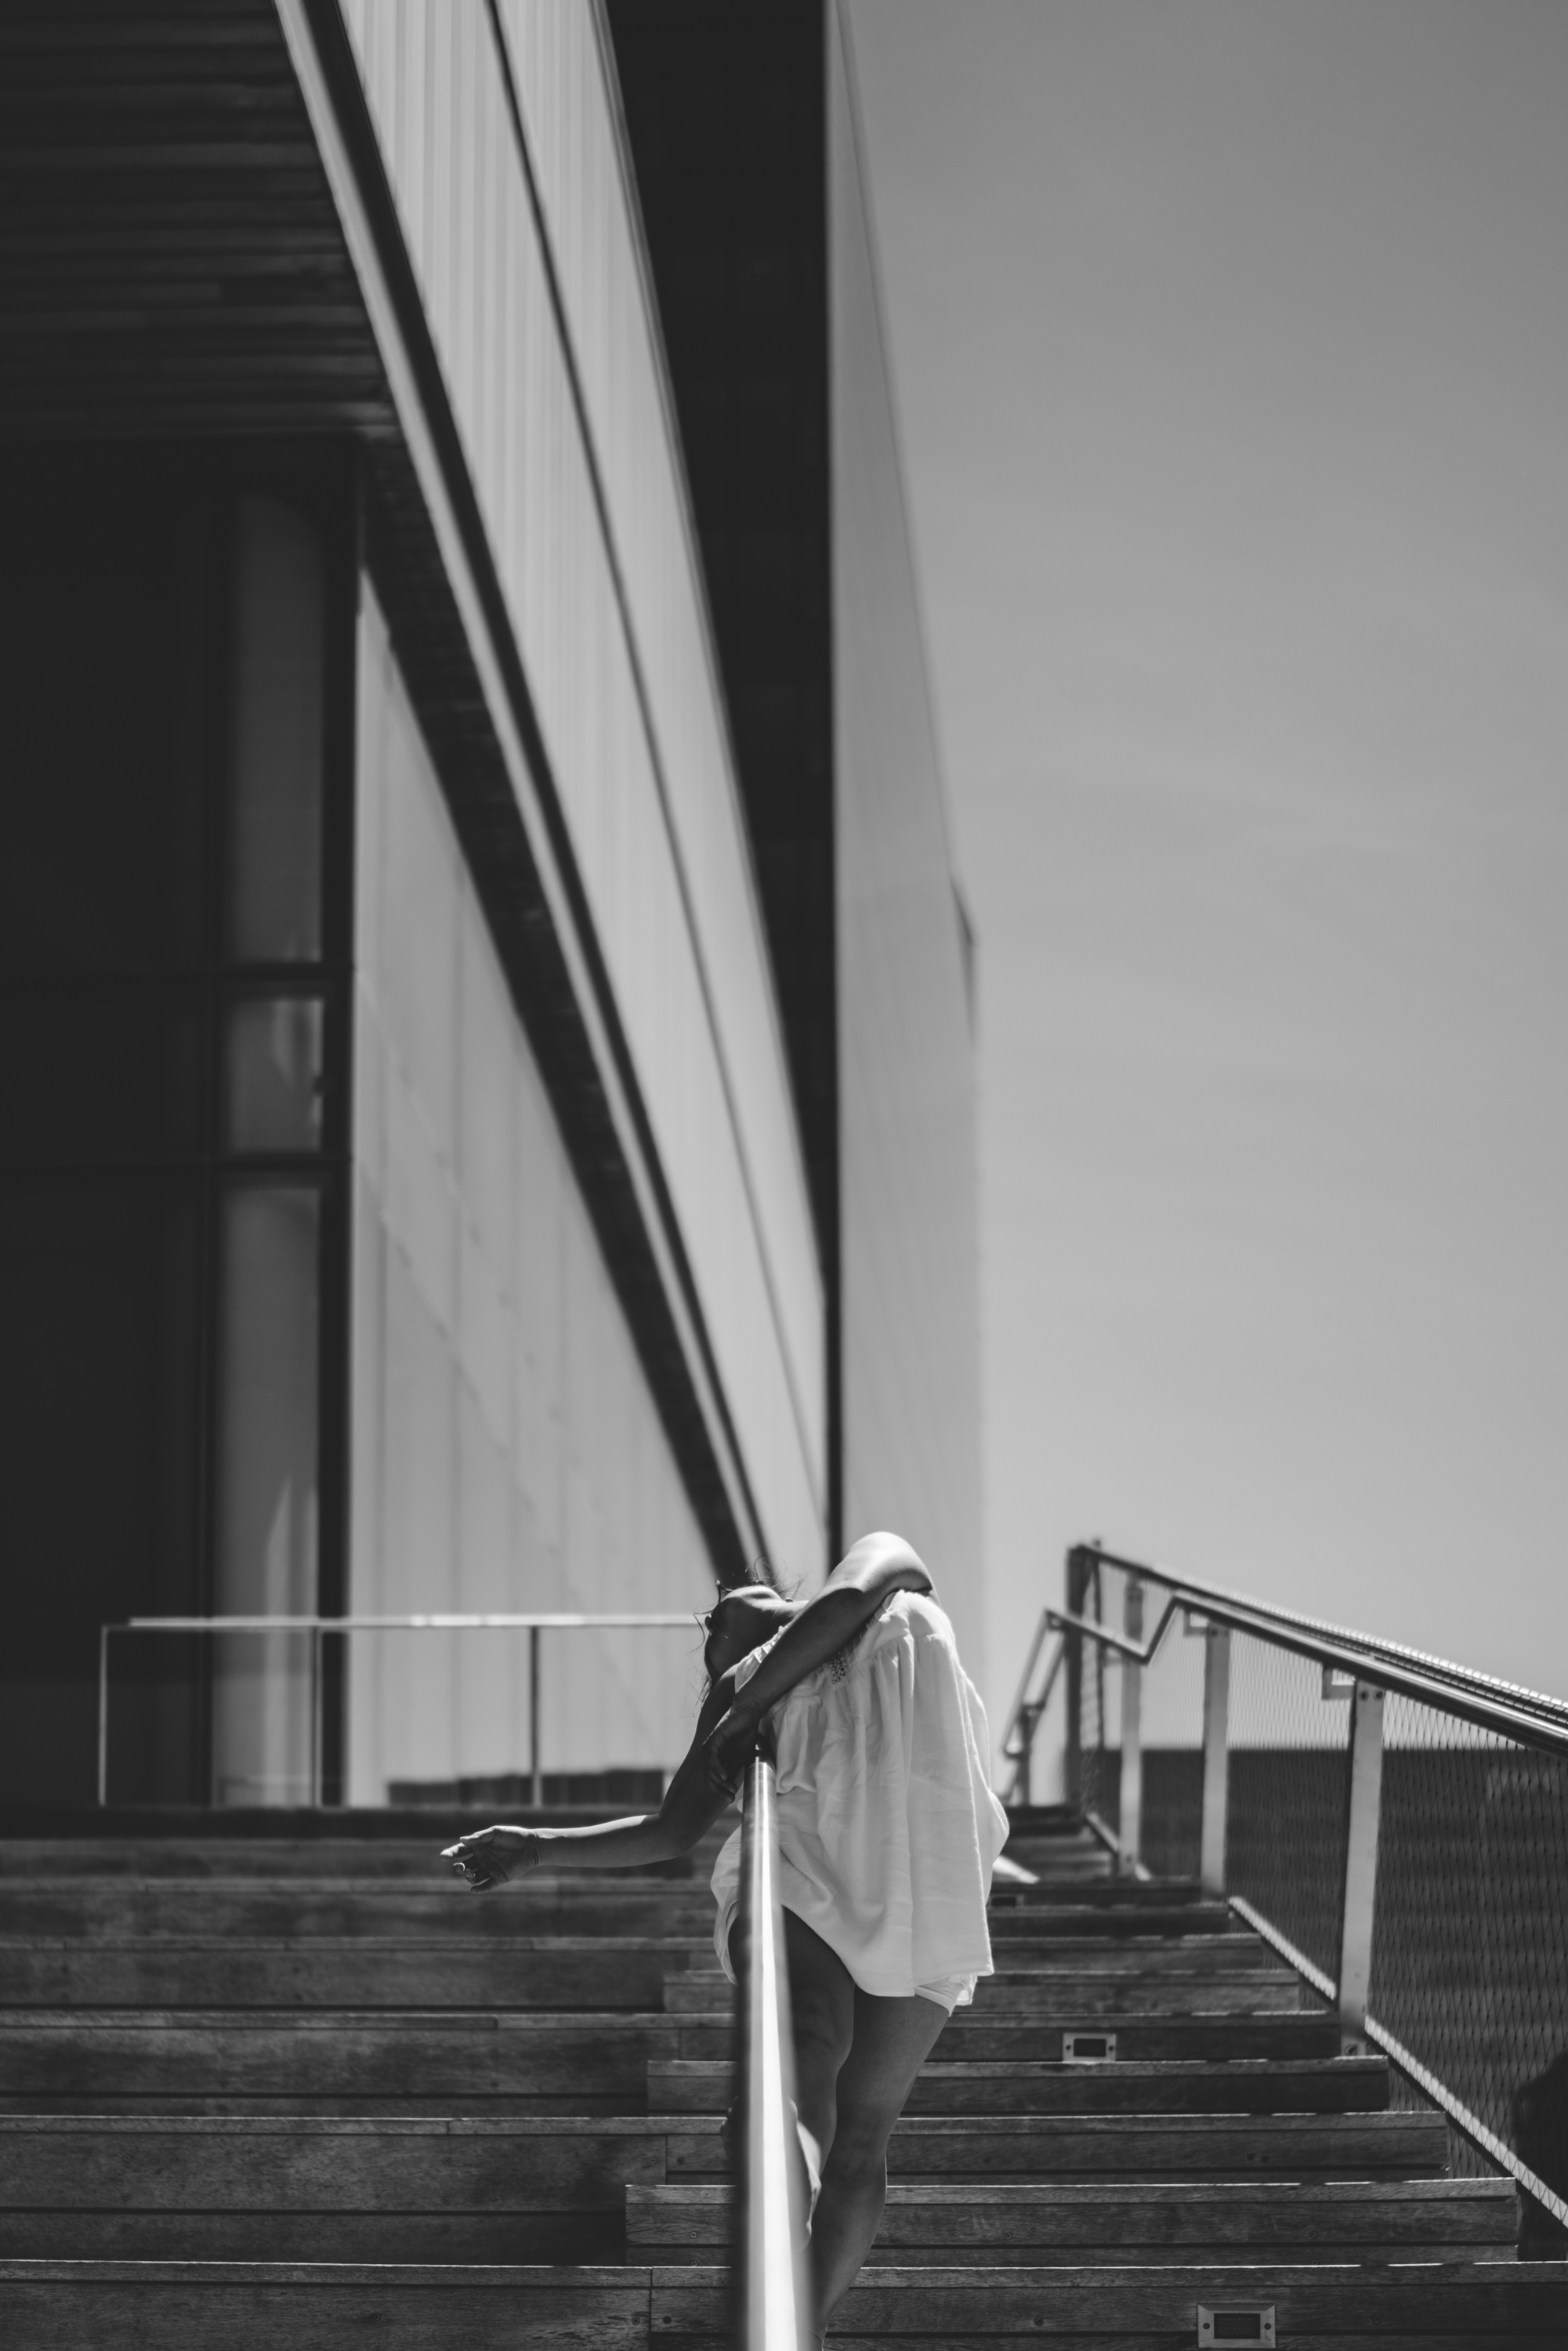 black and white photo: a woman drapes over a outdoor railing